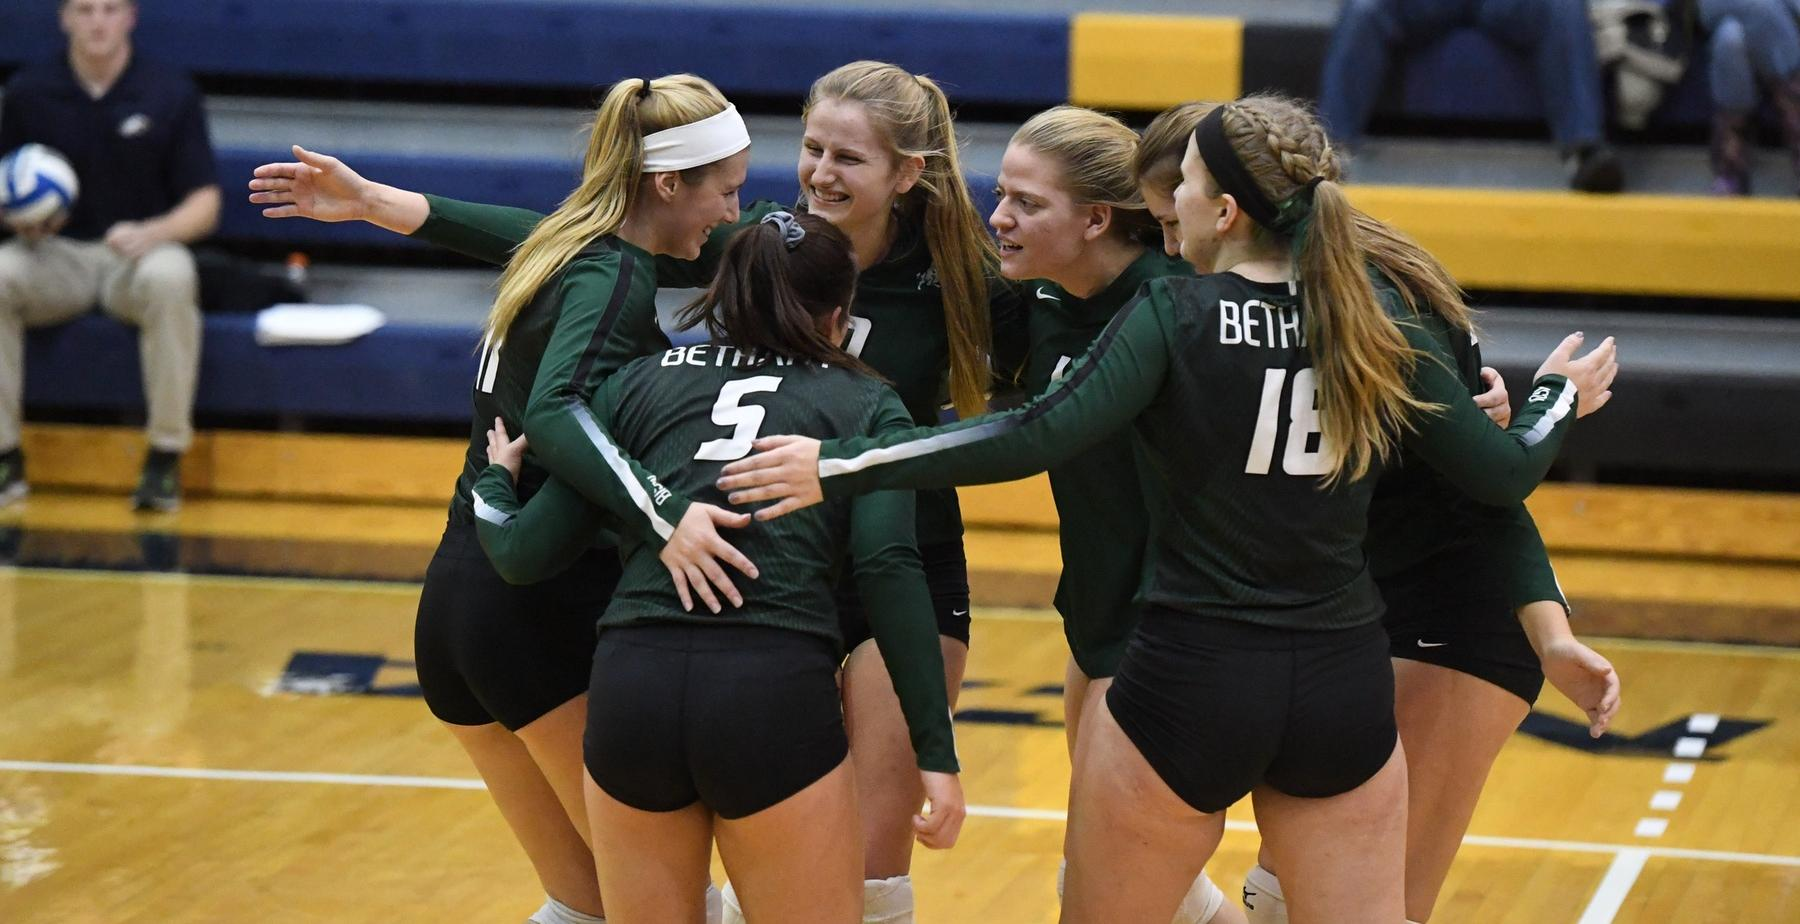 Bethany Favored in PAC Women's Volleyball Preseason Coaches' Poll